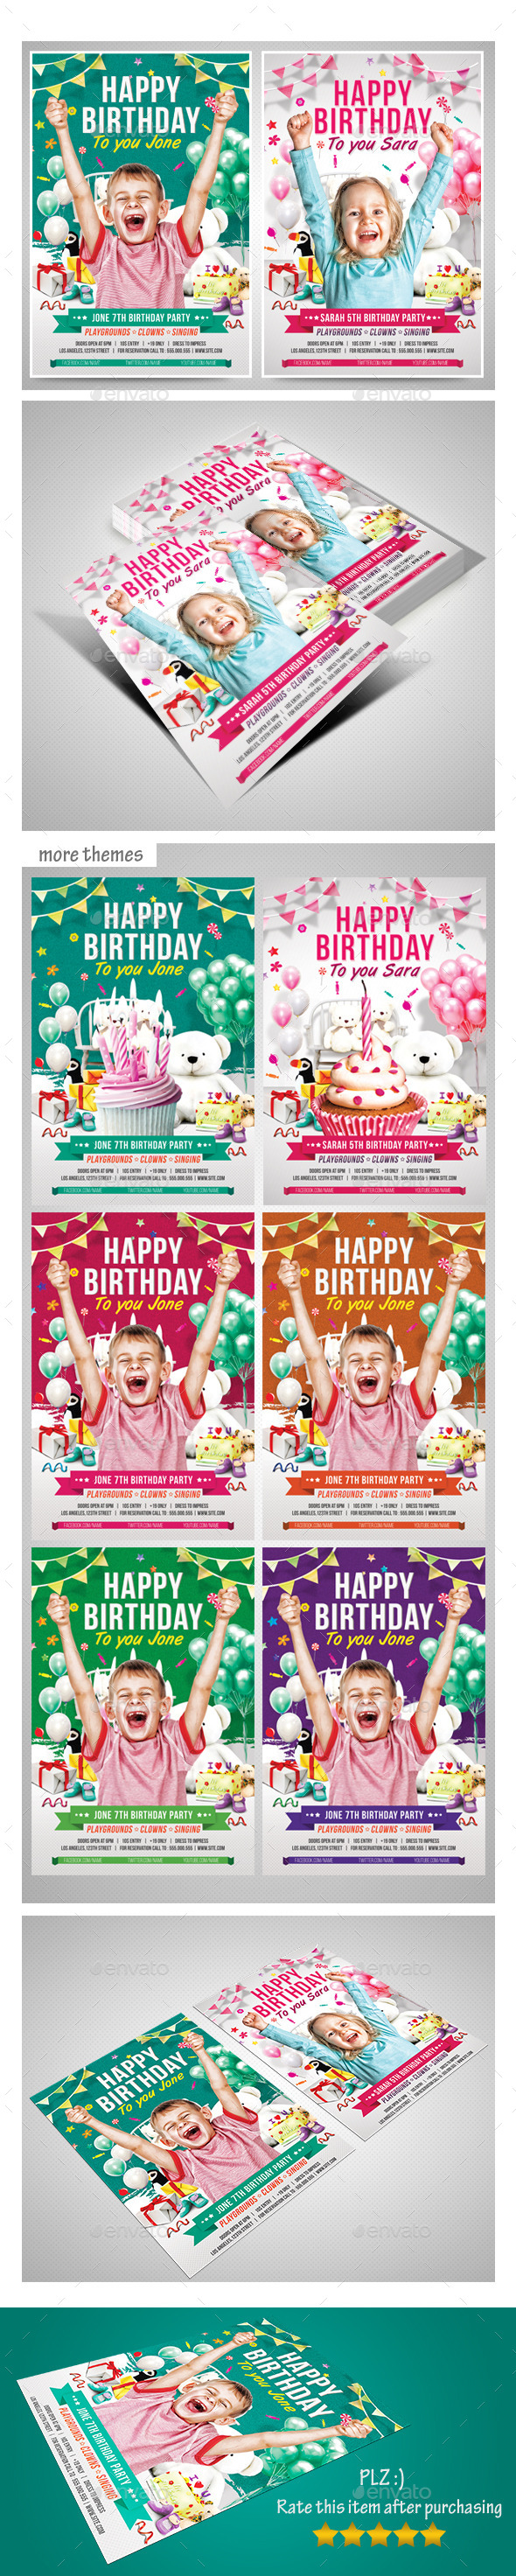 oktoberfest flyer template v funny flyers posts fun psd kids birthday party template only available here 10141 graphicriver